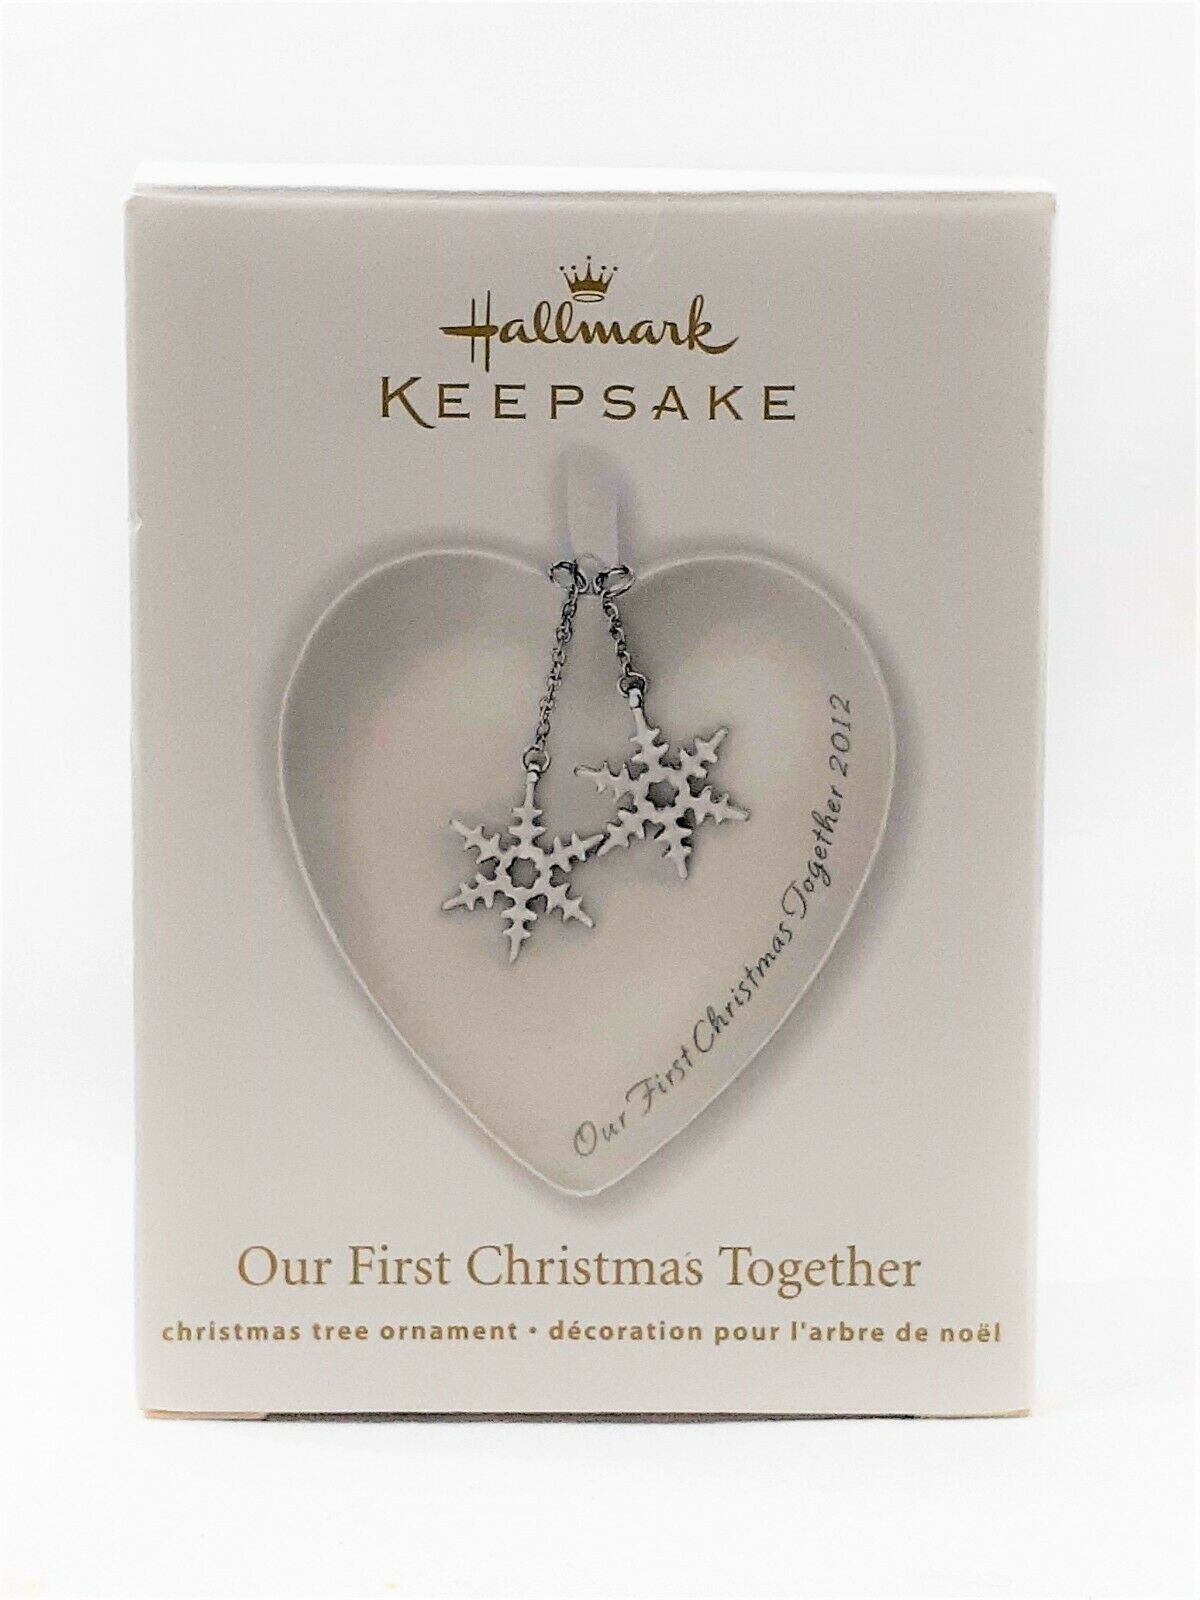 2012 Hallmark Keepsake Ornament First Christmas Together Porcelain Heart Snow - $3.99